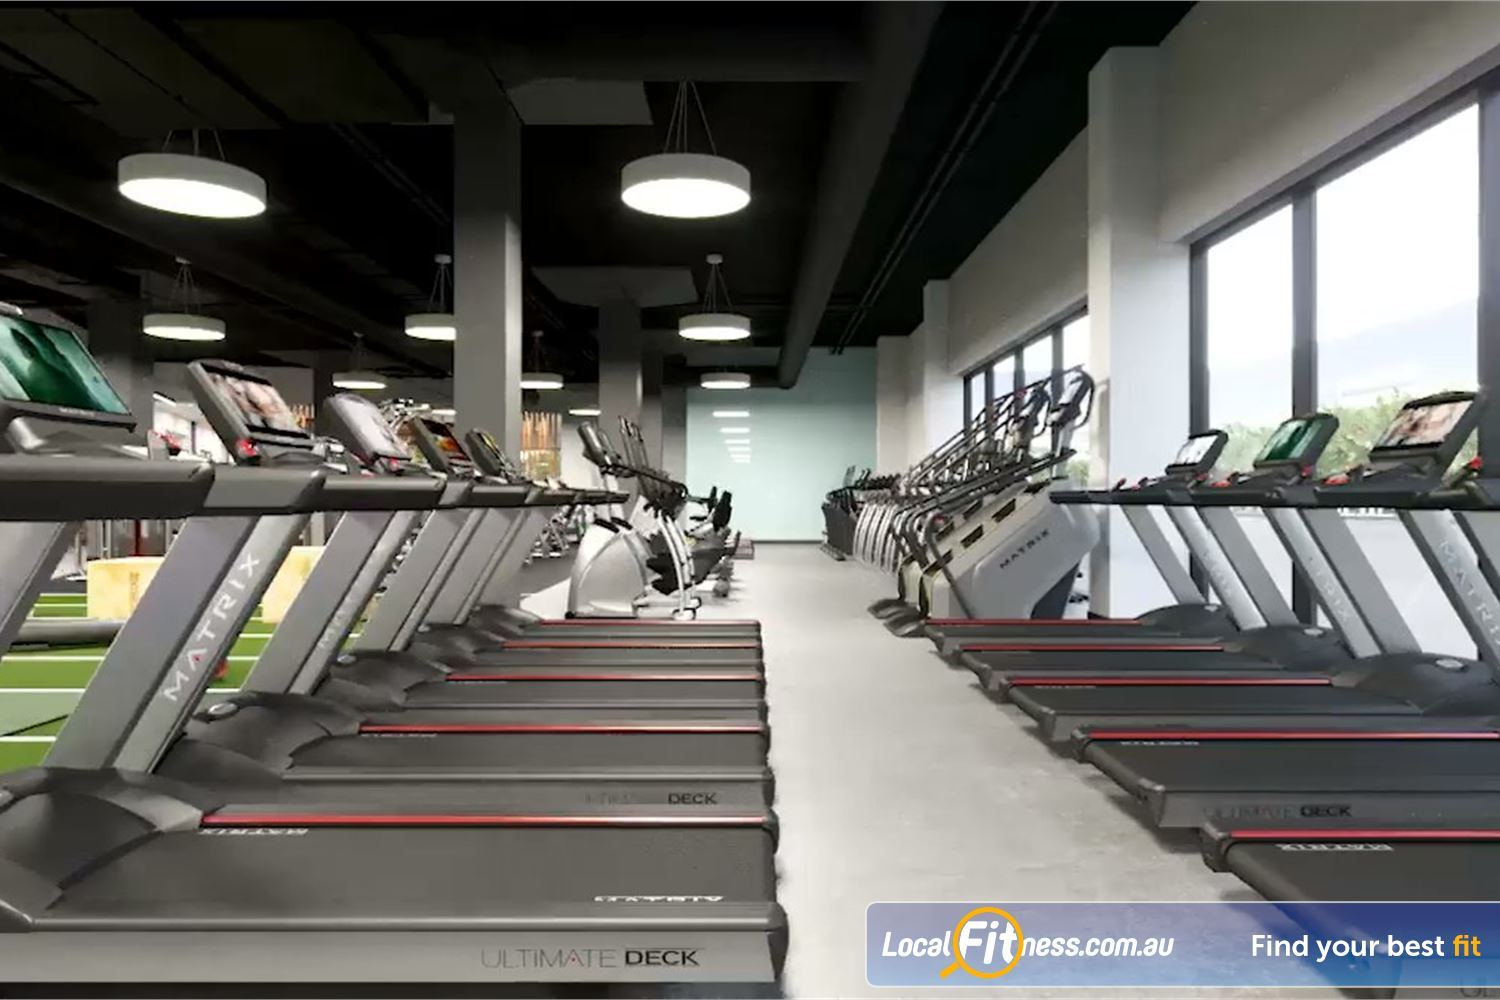 Goodlife Health Clubs Toowoomba Our Toowoomba gym includes rows and rows of cardio machines.